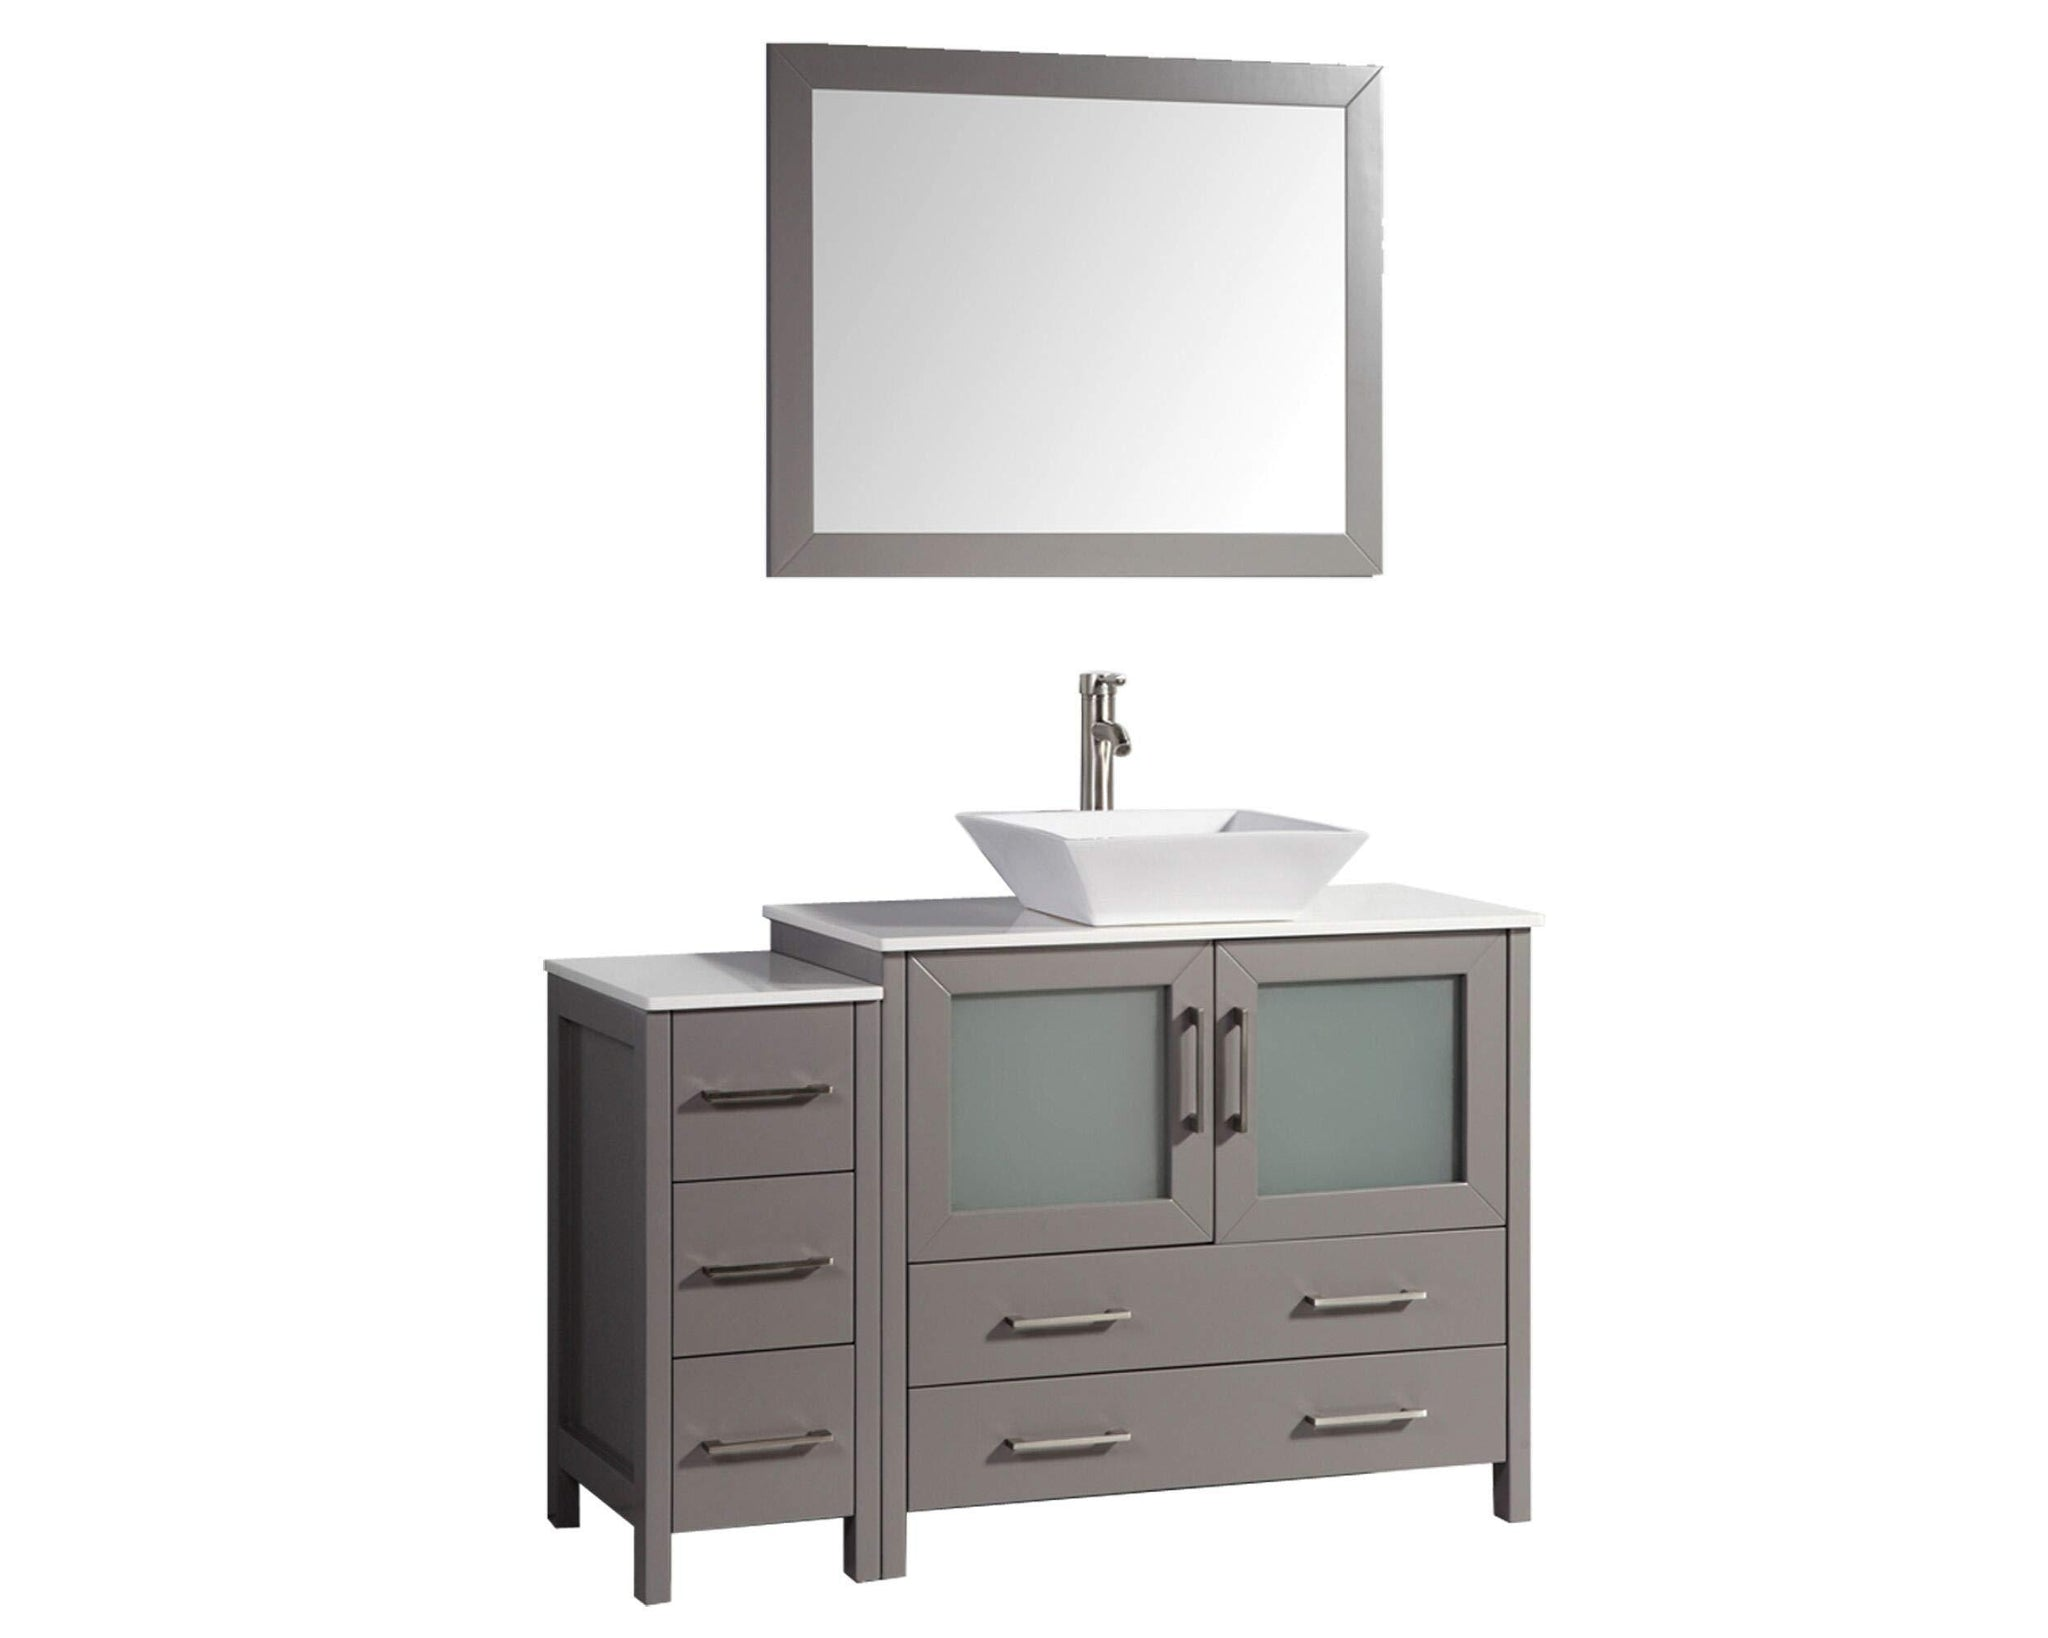 Products vanity art 48 inch single sink bathroom vanity combo modern cabinet with ceramic top sink free mirror gray va3136 48g